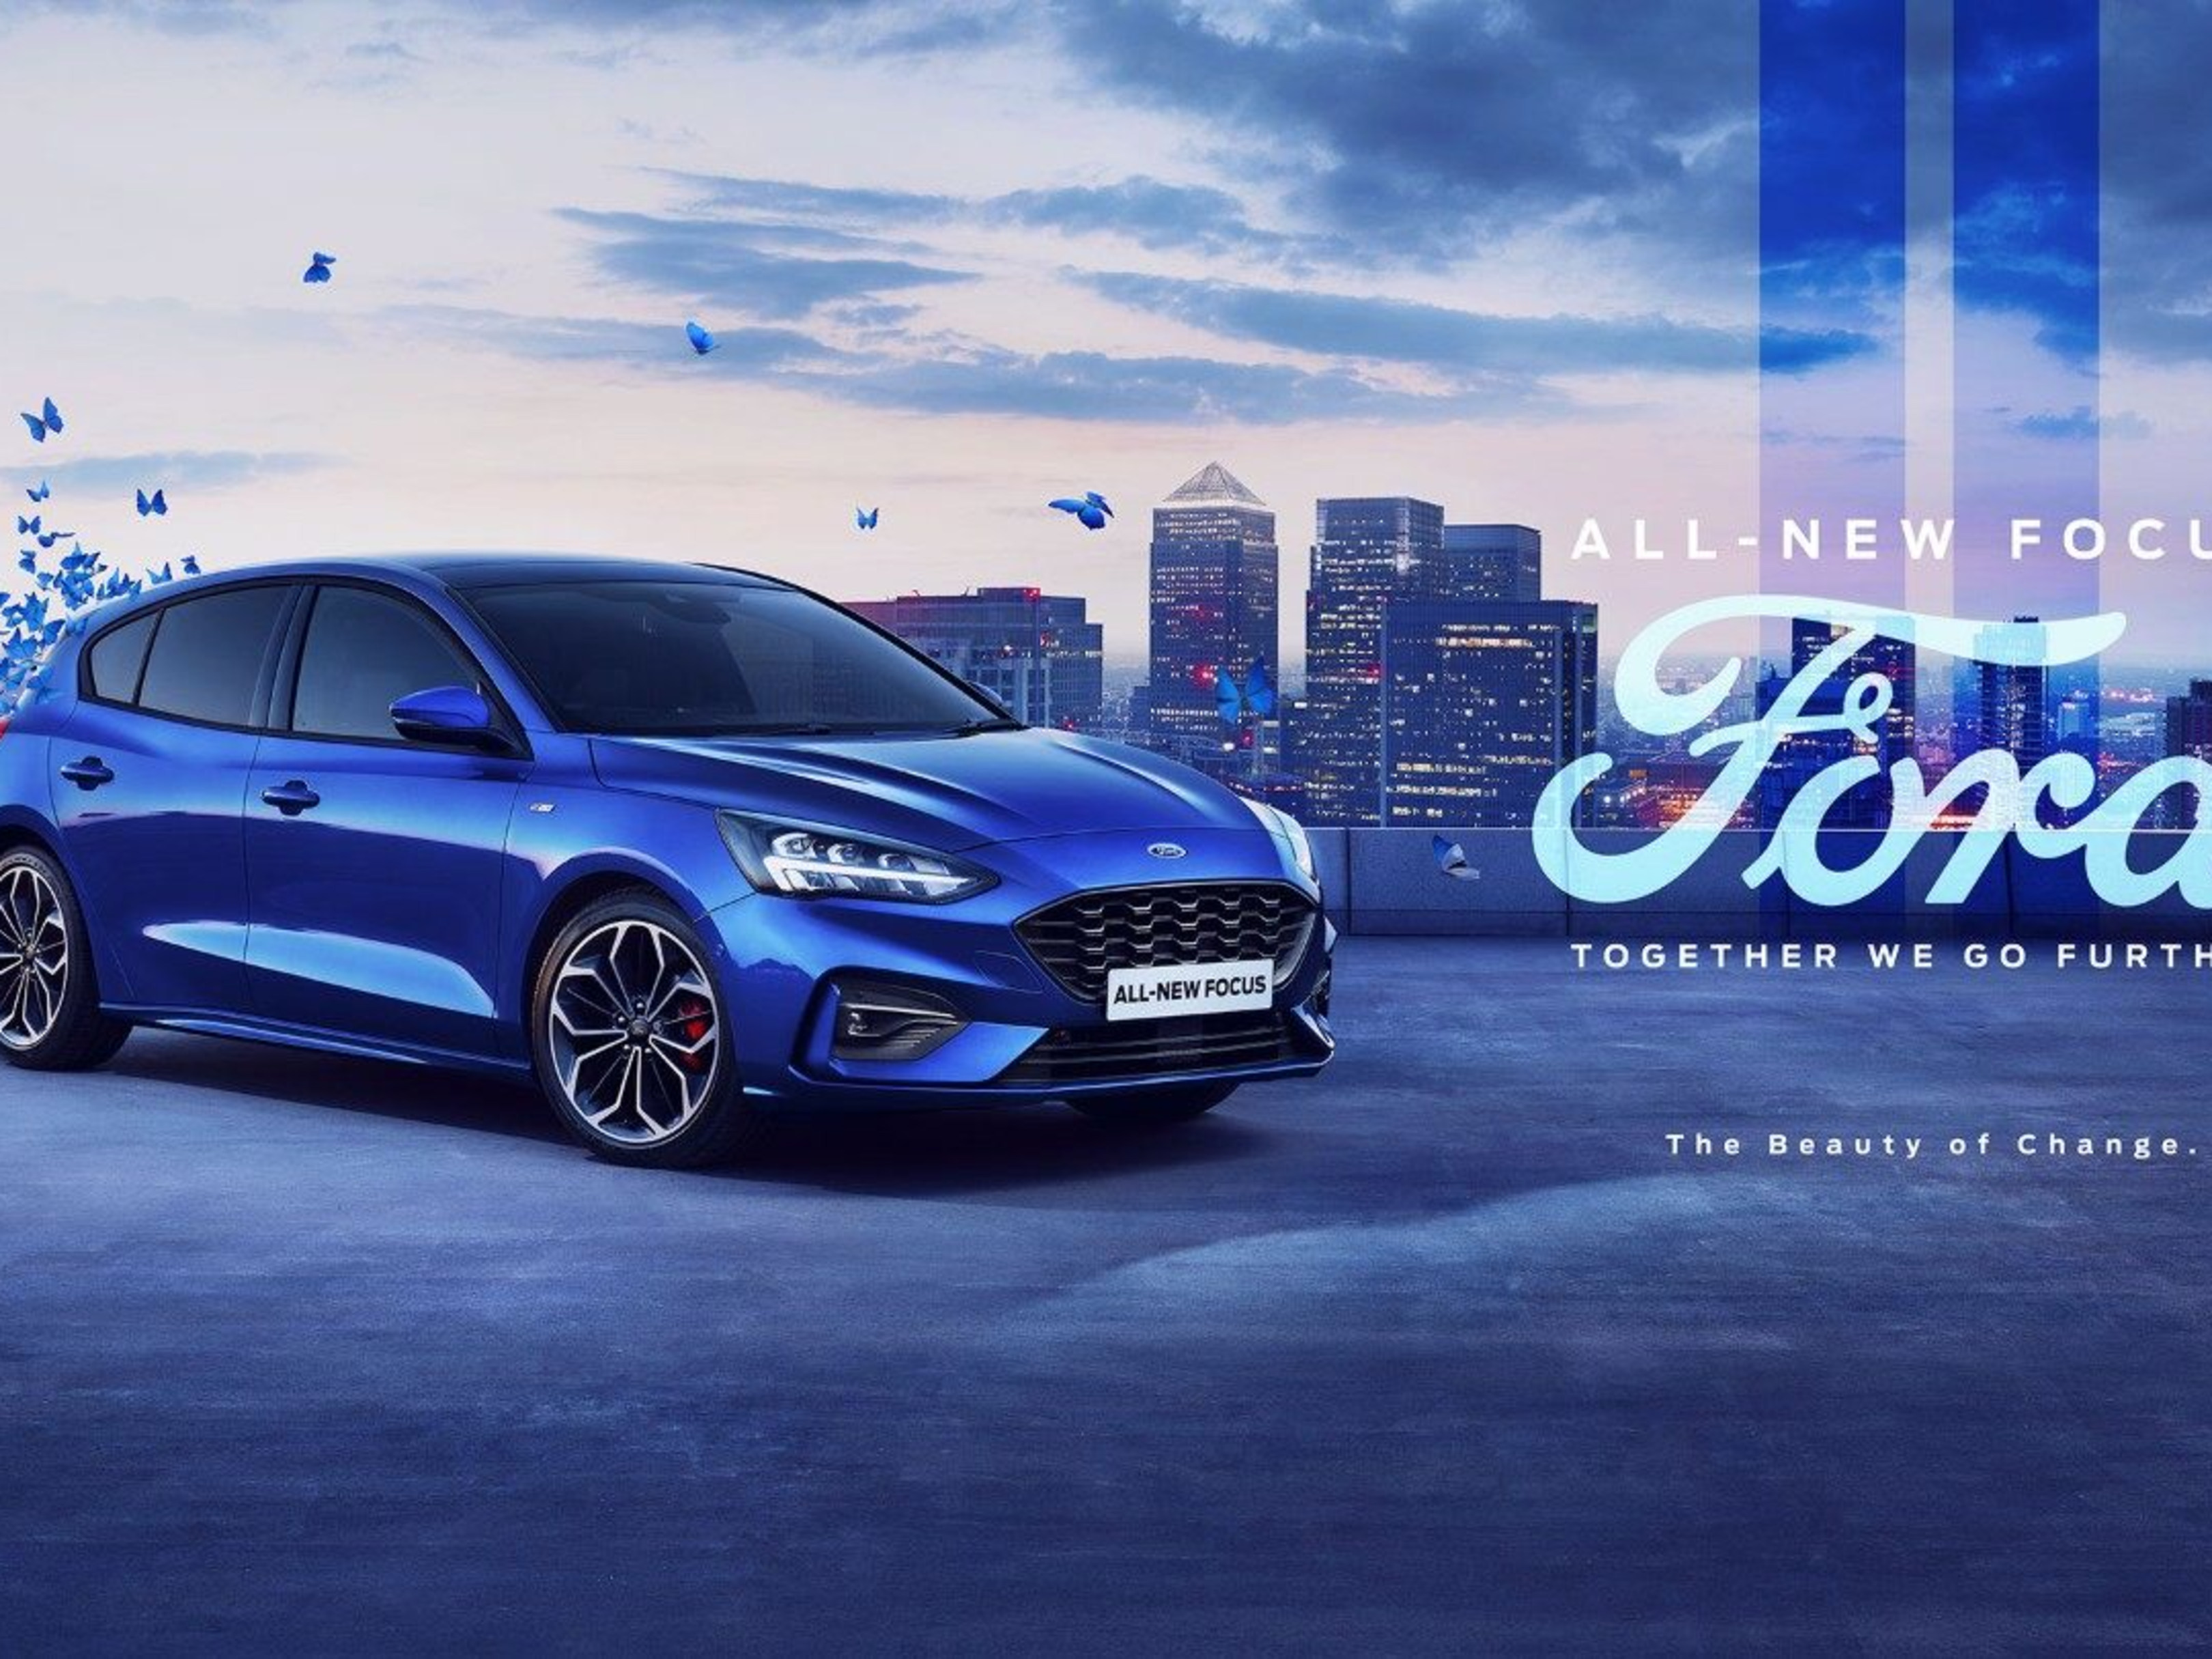 Ford Dealership The West Midlands Johnsons Ford